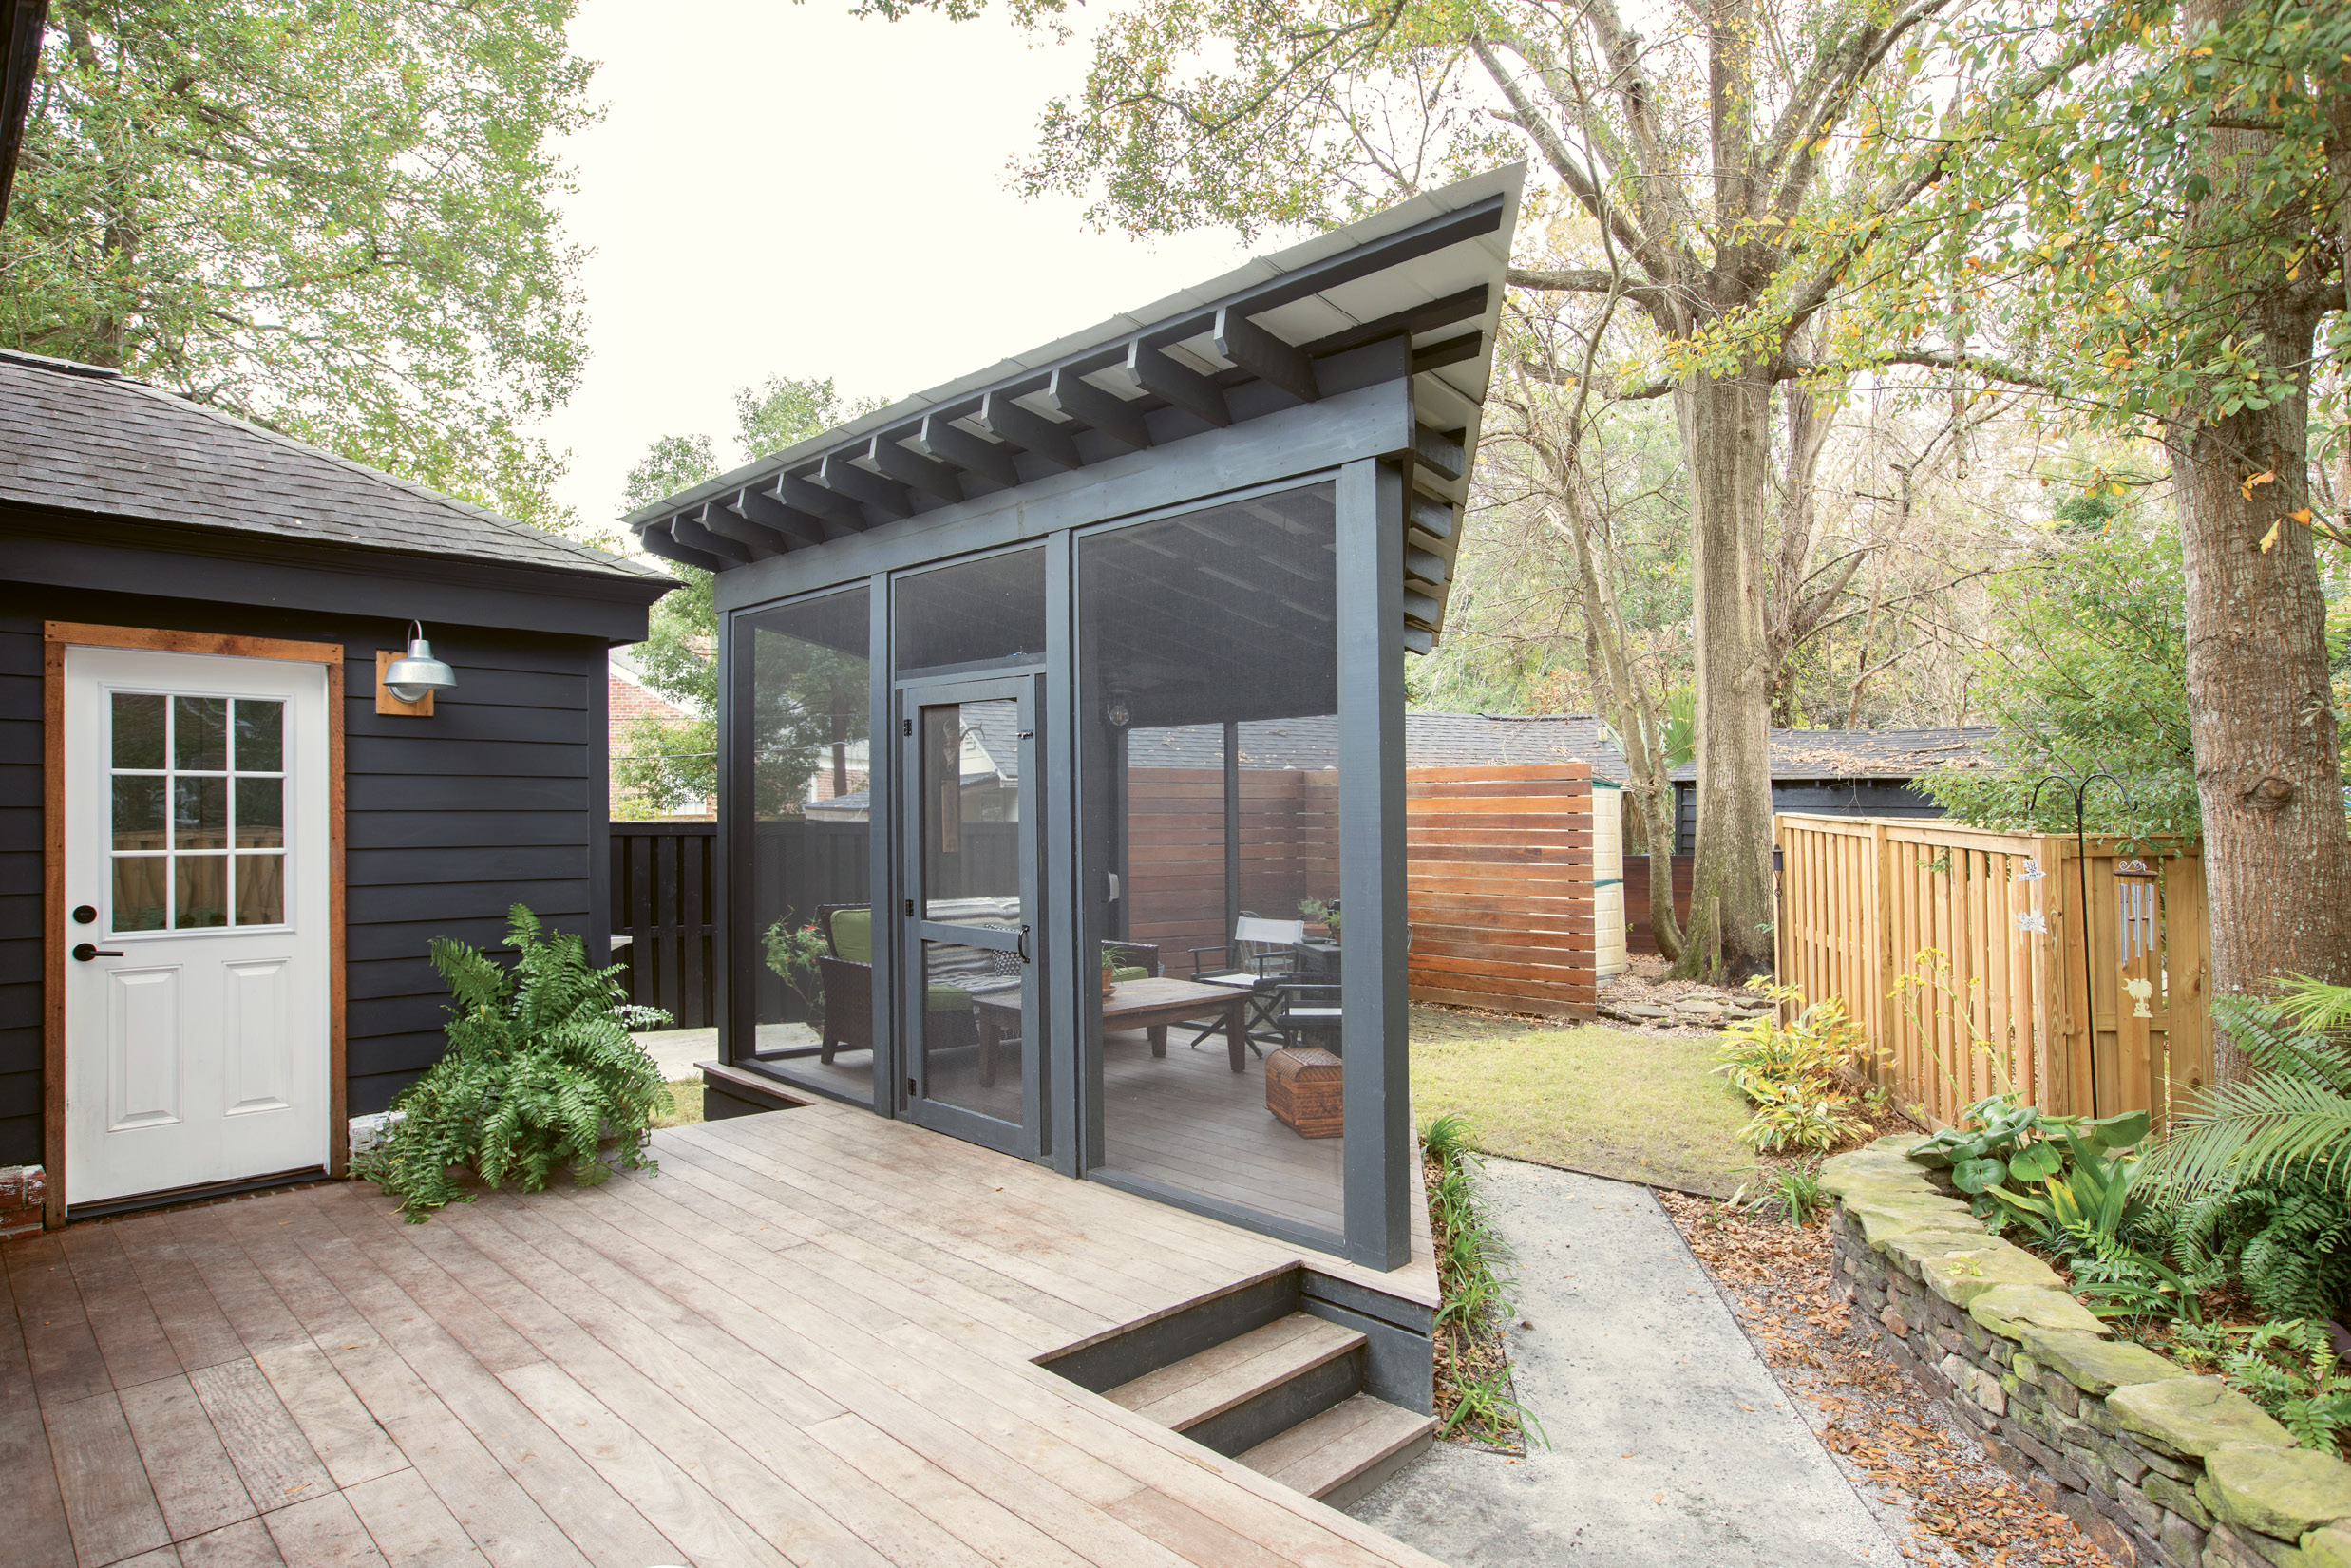 "PRIME PERCH: Just off the back deck, an angular screened-in porch makes the most of the triangular lot; its tin roof adds an industrial touch that feels perfectly in step with the rest of the modern-minded renovation. ""I'm so glad we made the screened-in porch happen: I love being outside, but the no-seeums drive me nuts,"" Jacques says. ""There's nothing better than sitting on the couch outside, listening to the wind blow, birds sing, and children playing in the neighborhood."""